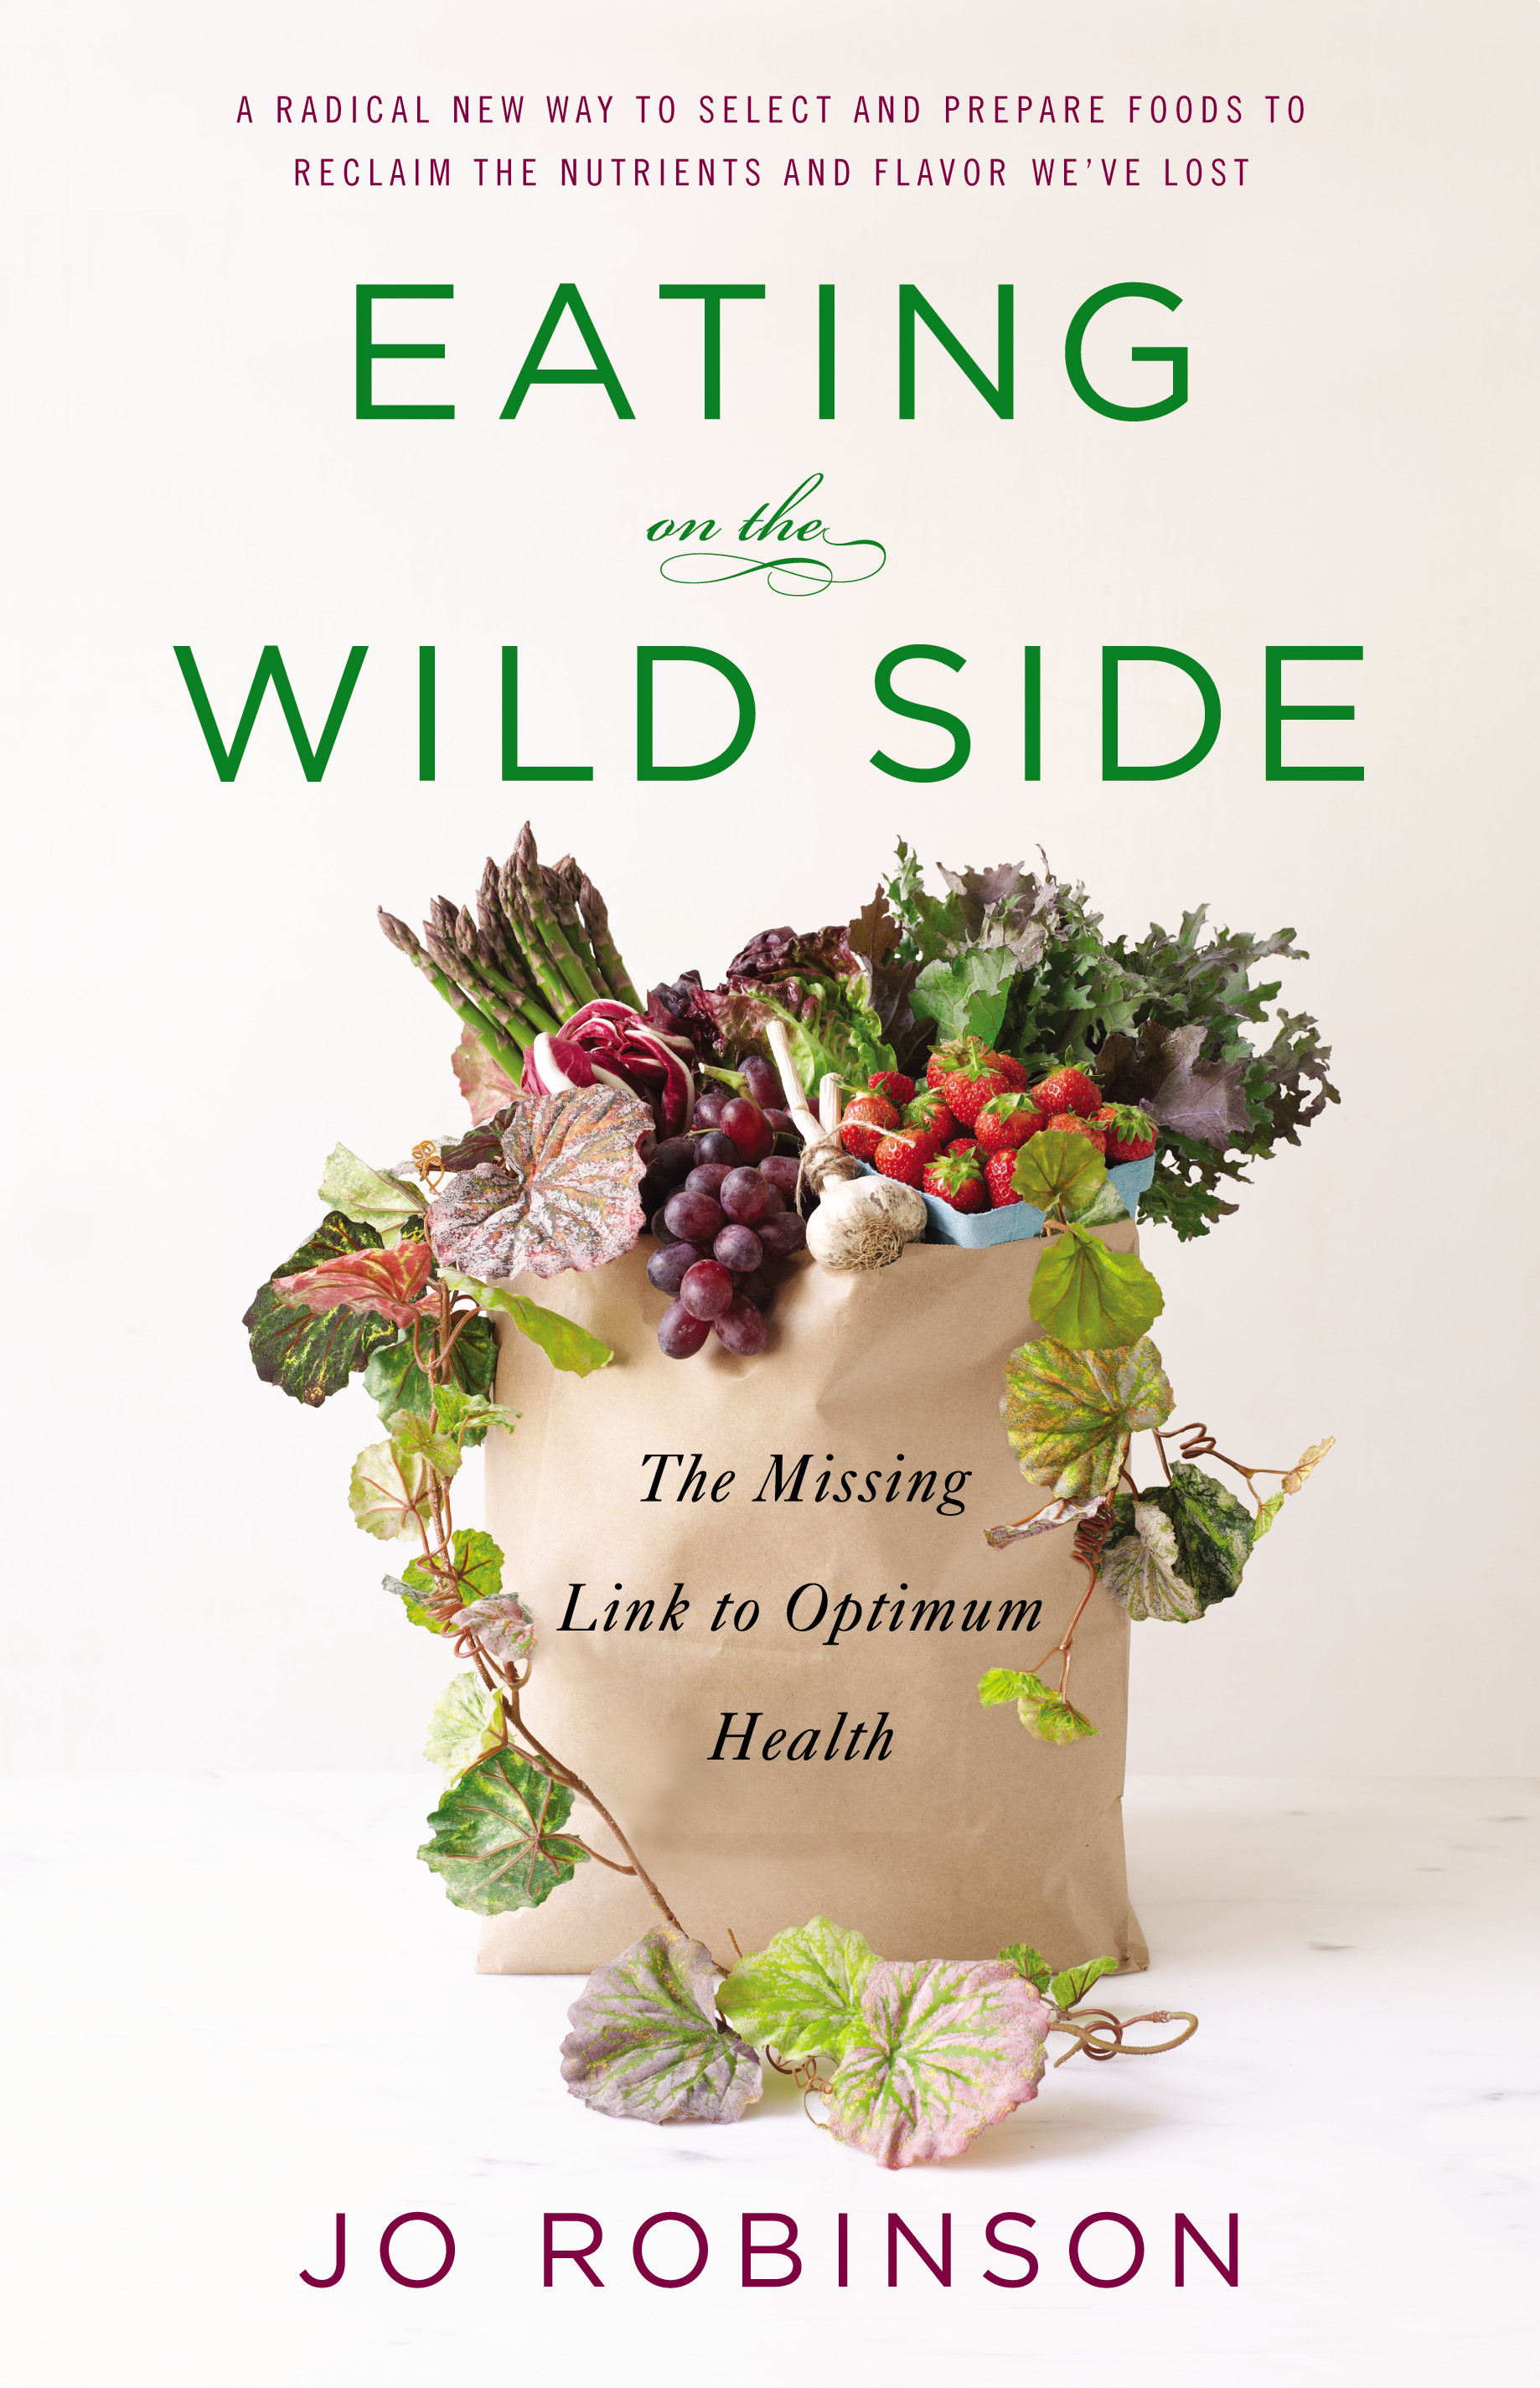 """It's about the health benefits of the wild vegetation that's been filtered from our diets."" $13, barnesandnoble.com"